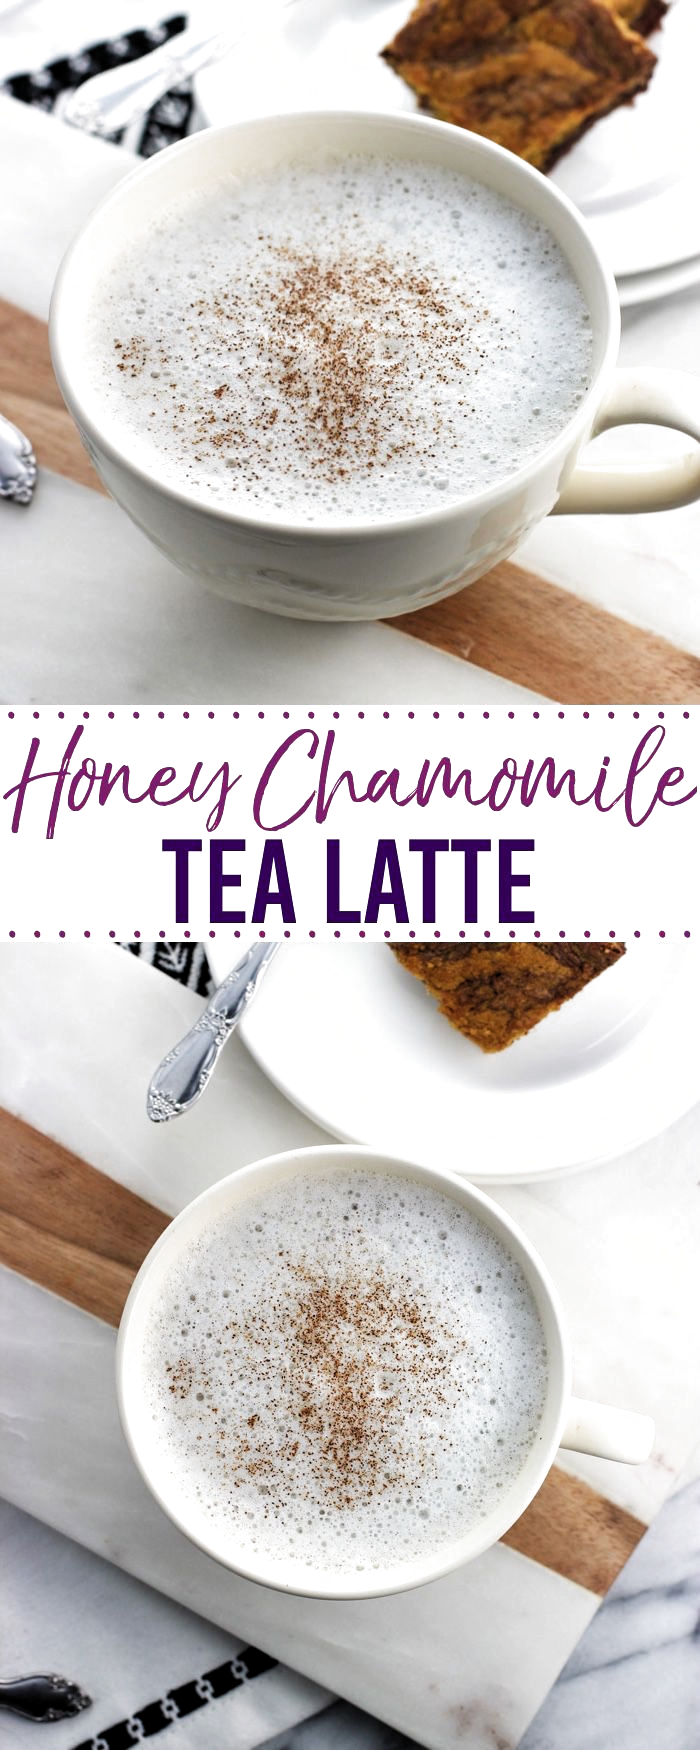 This Easy Honey Chamomile Tea Latte Is A Soothing And Warm Drink Sweetened With Just A Touch Of Honey So Much In 2020 Chamomile Tea Recipe Tea Latte Tea Latte Recipe